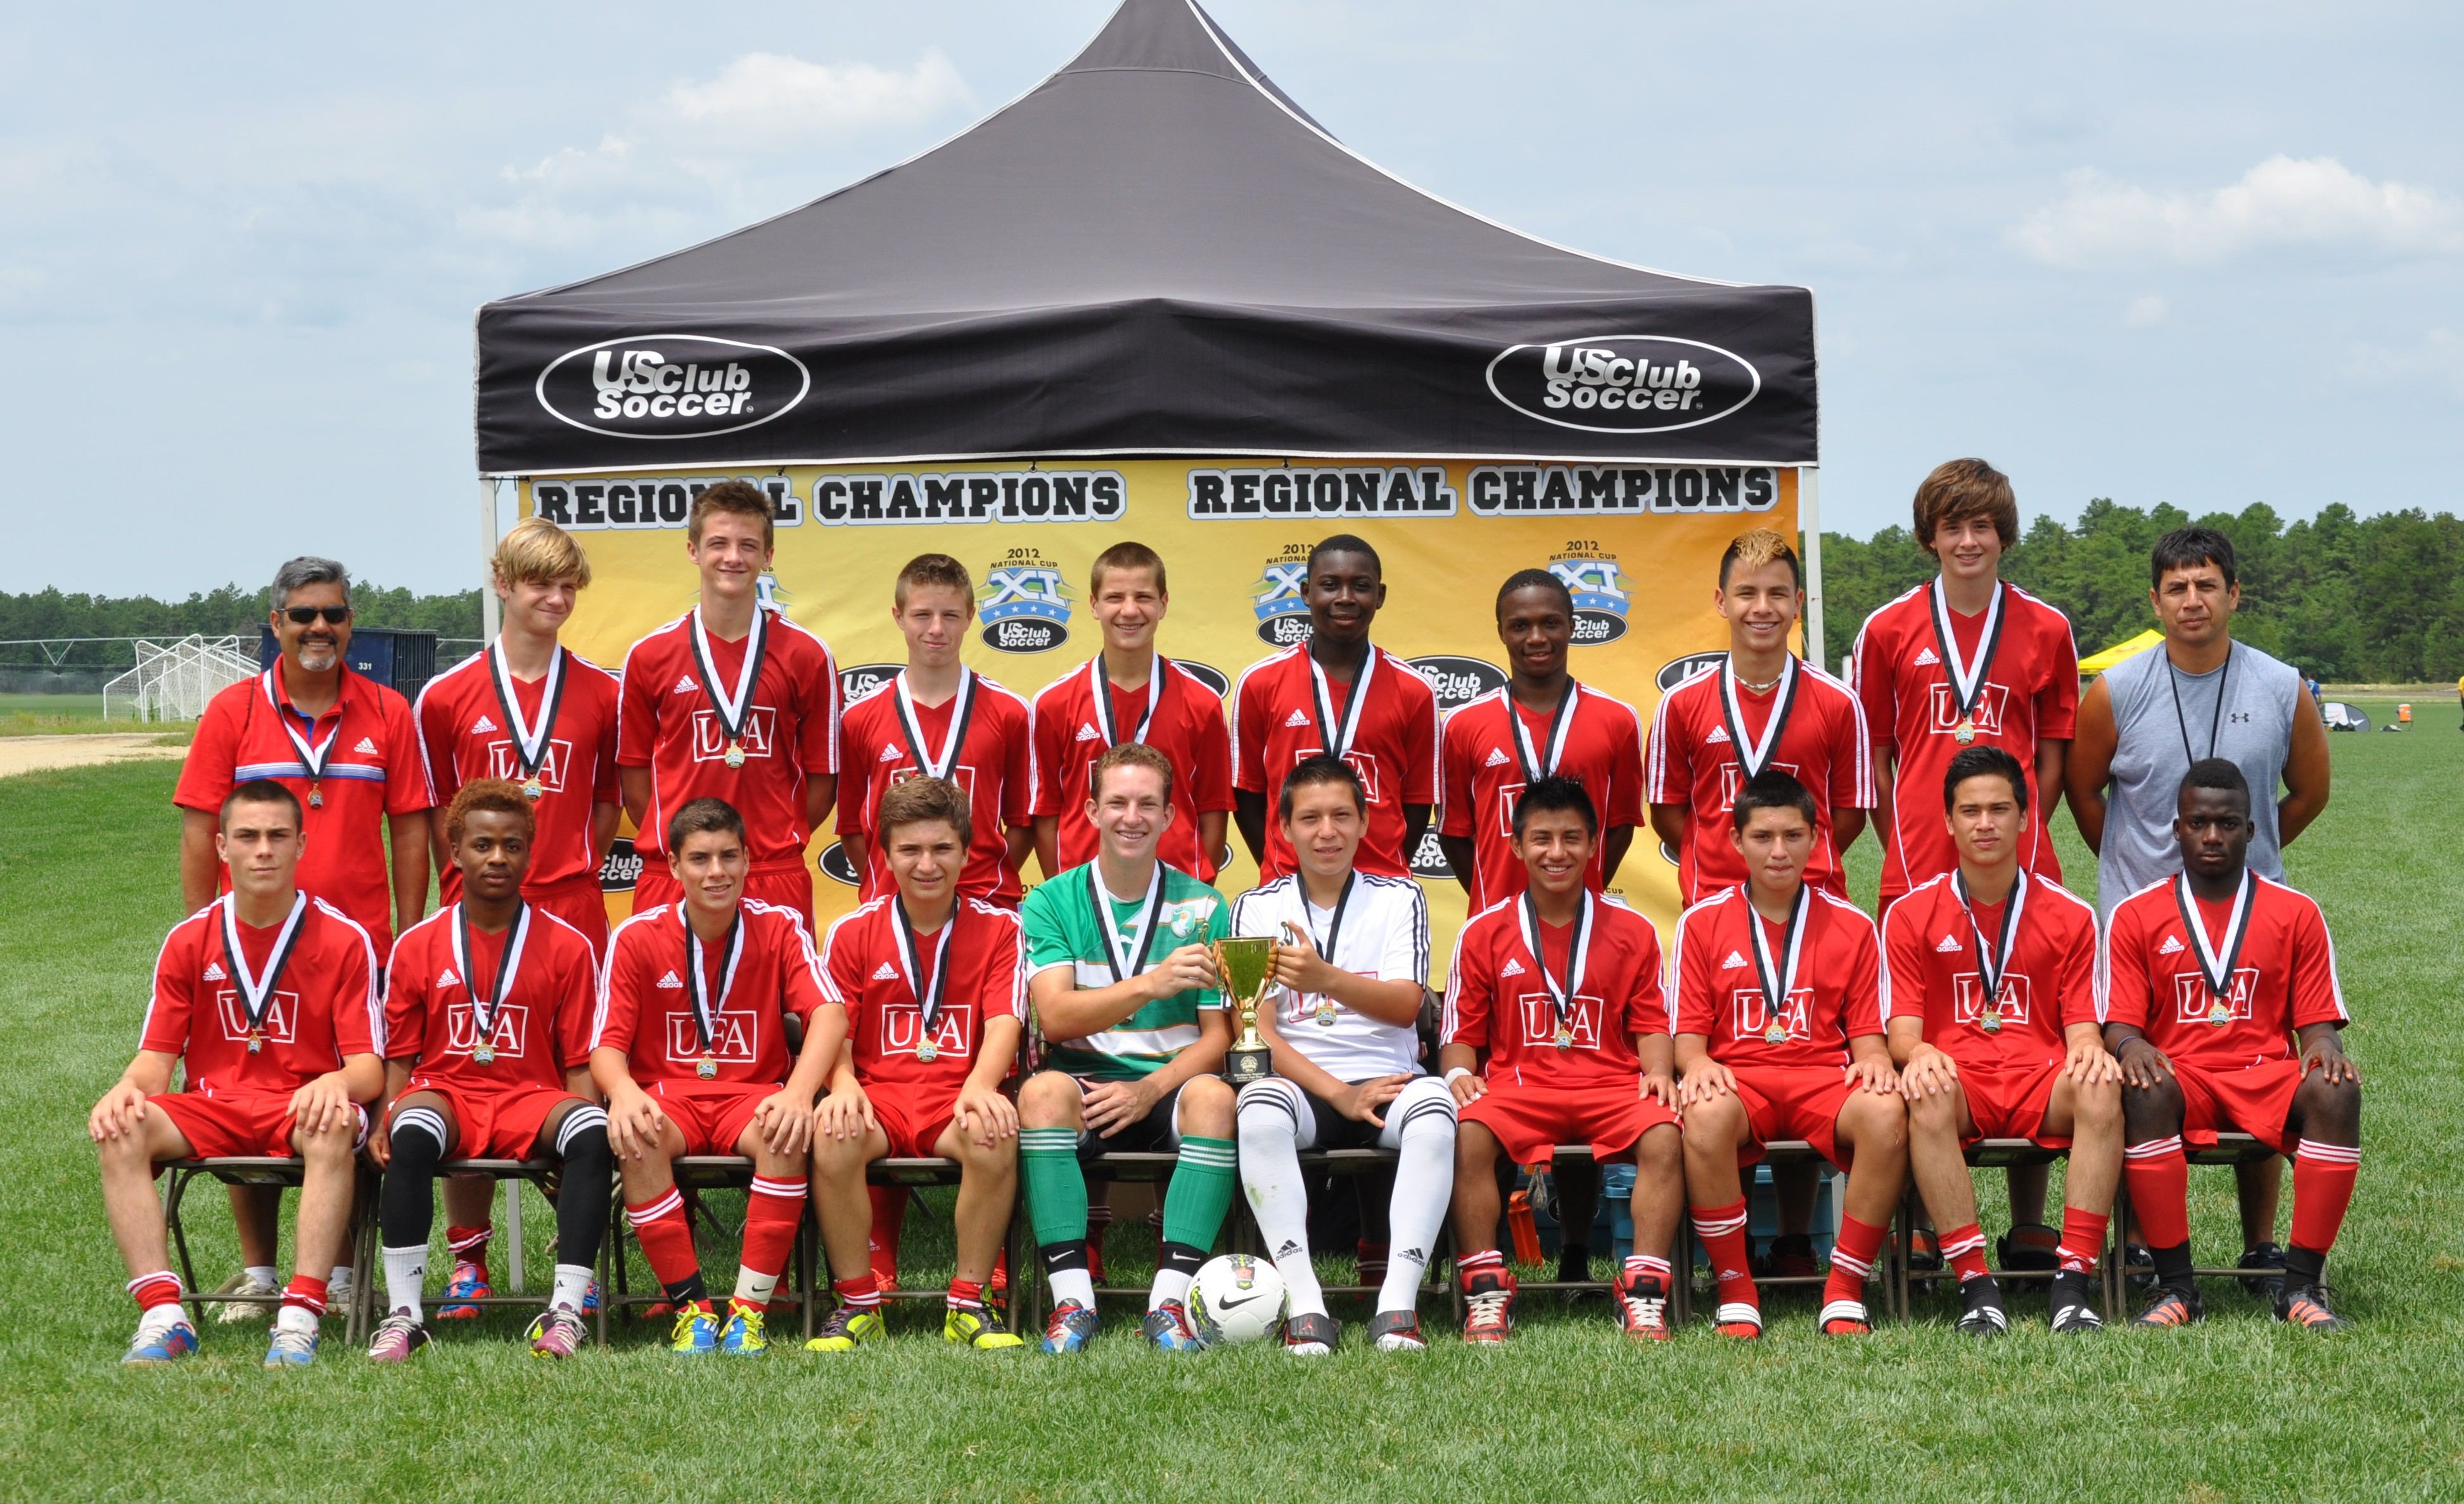 ufa nj strikers were finalists in the 2012 maps cup after beating new york soccer club